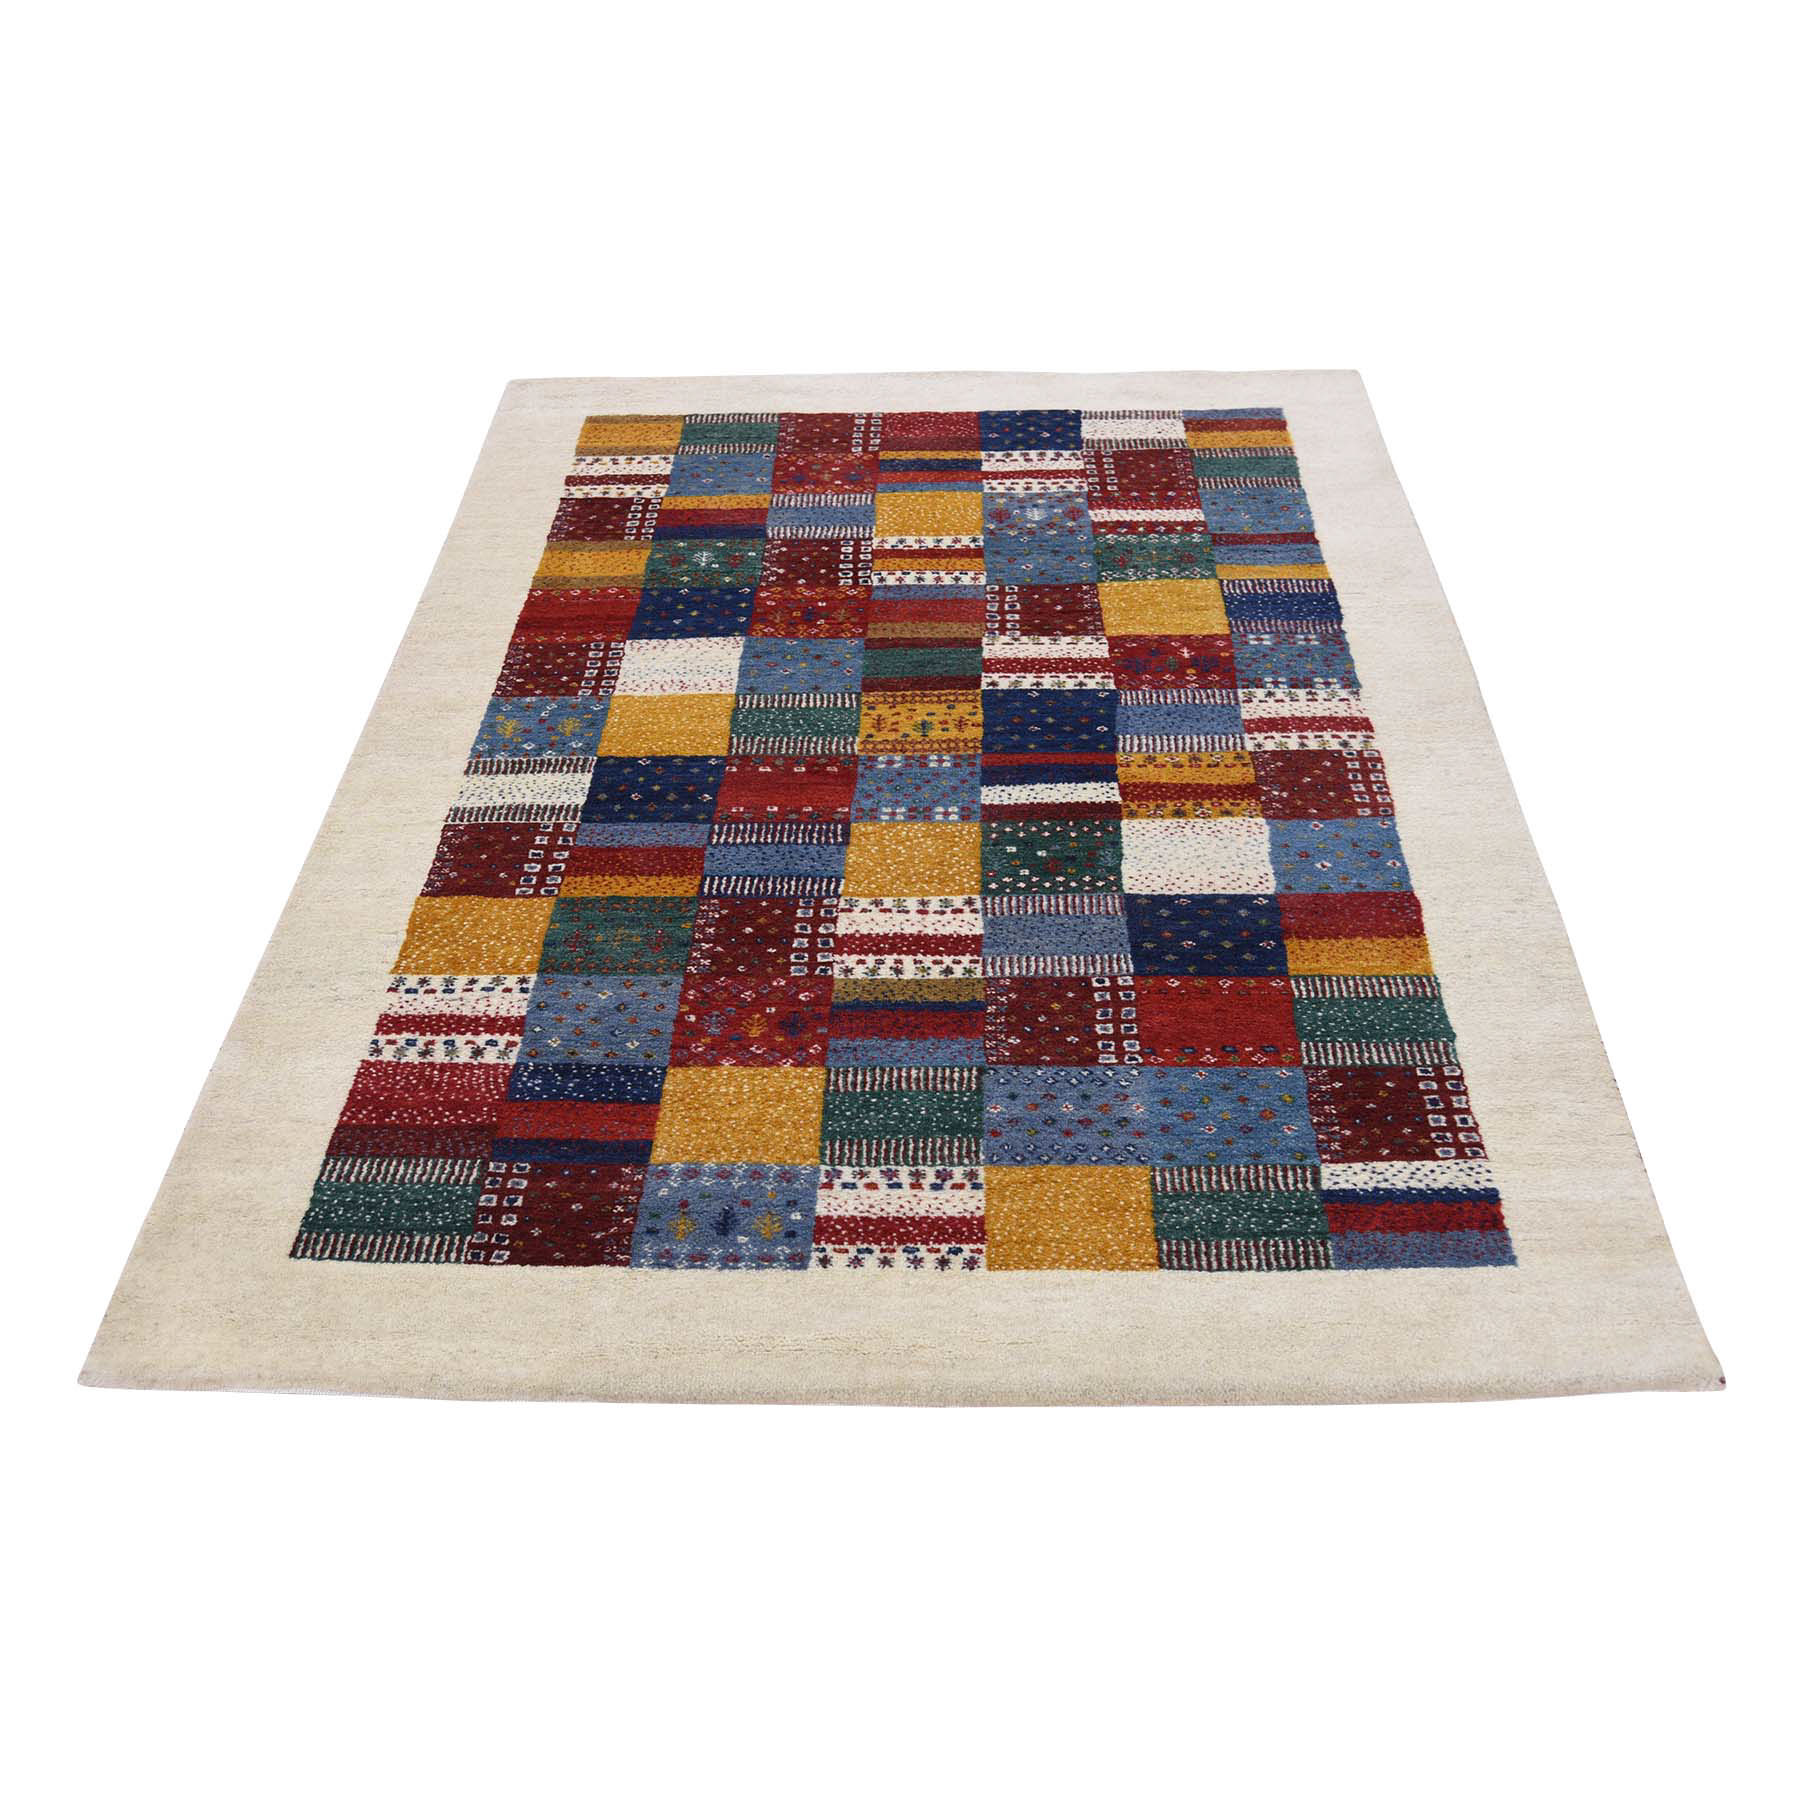 4'X6' Persian Wool Hand Knotted Lori Buft Gabbeh Patchwork Design Rug moac8aad